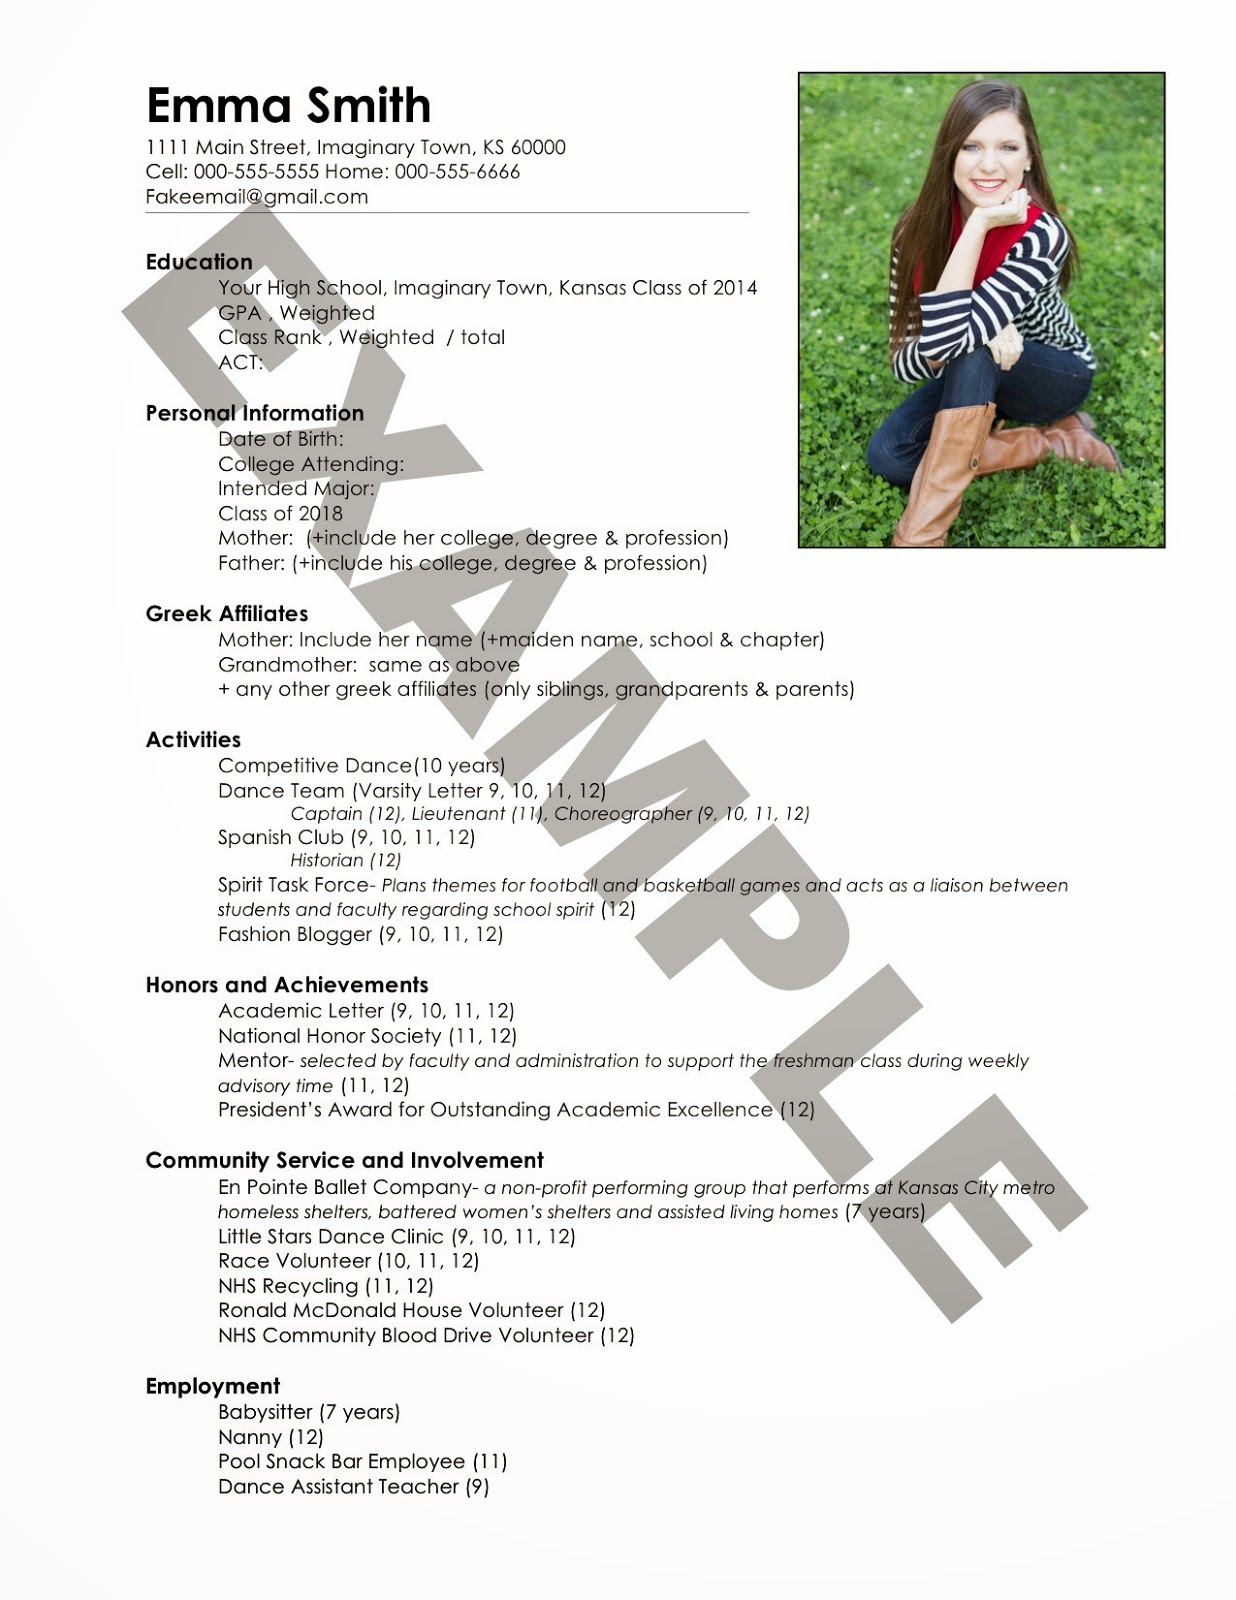 Fine 1 Hexagon Template Thick 1 Page Resumes Solid 10 Steps To Creating A Resume 100 Chart Template Young 1099 Template Purple12 Month Calendar Template The Ultimate Guide To Sorority Recruitment: How To Write A Resume ..